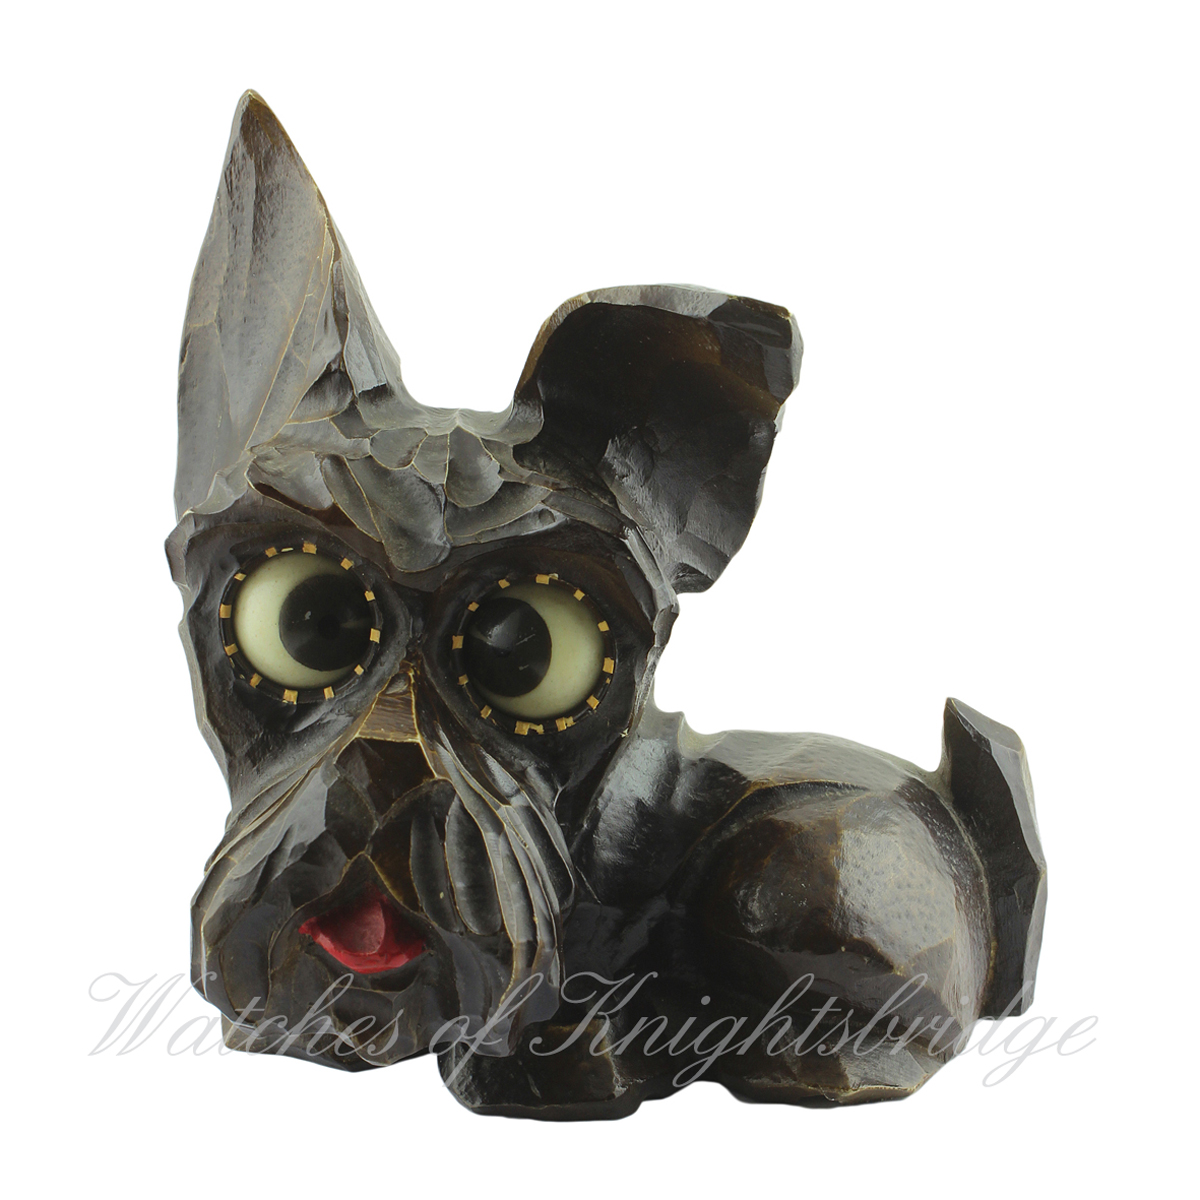 Lot 531 - AN OSWALD NOVELTY ROLLING EYE CLOCK IN THE SHAPE OF SCOTTIE DOG CIRCA 1930 The dogs eyes record